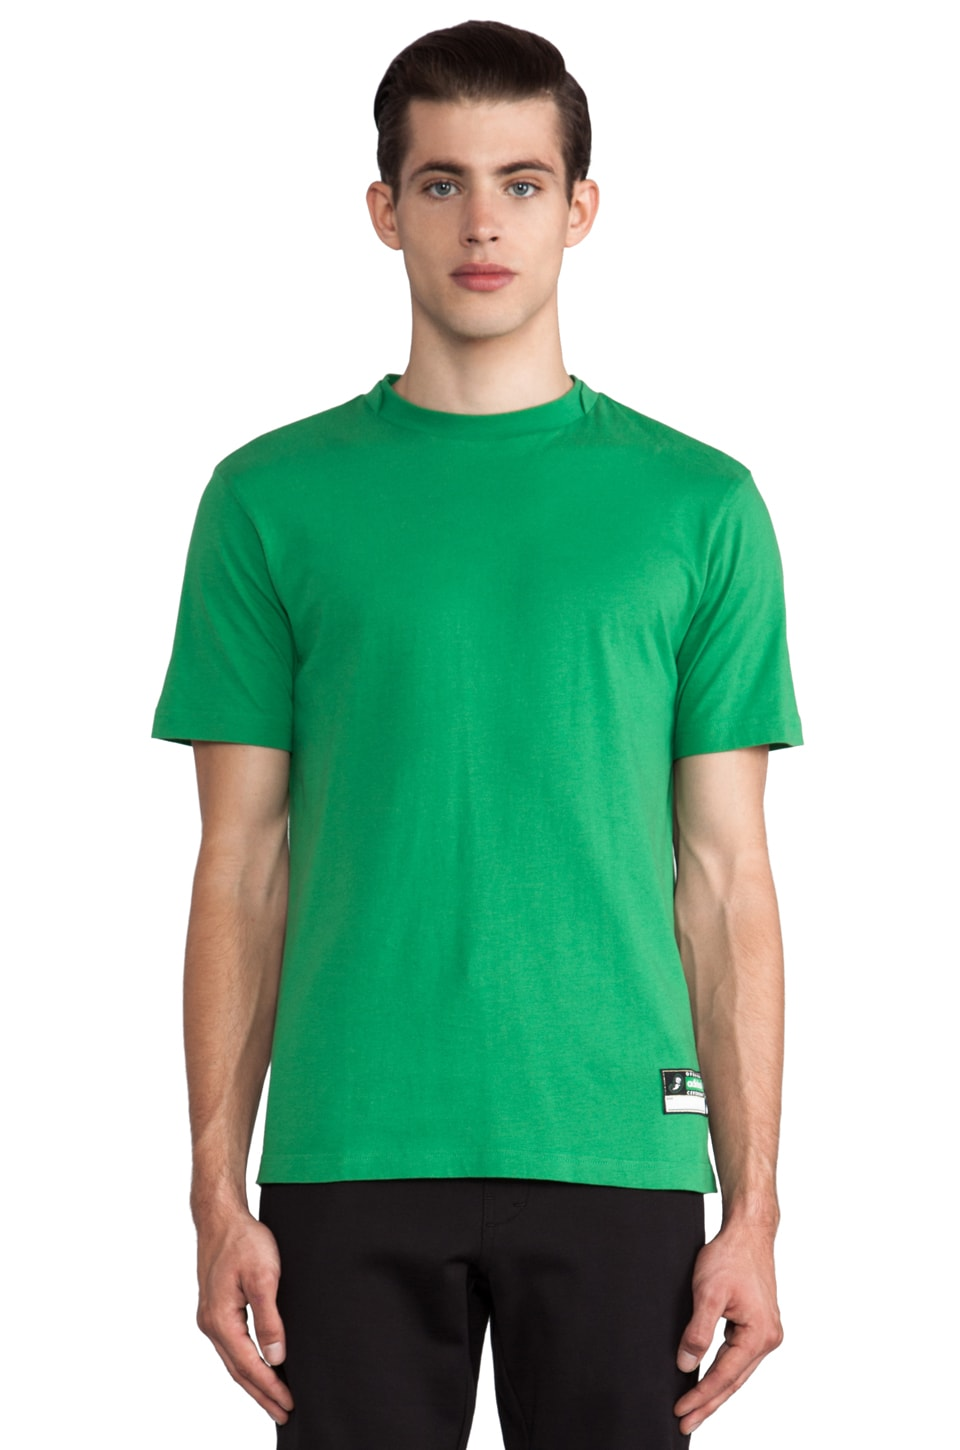 adidas Originals by Opening Ceremony T-Shirt in Prime Green